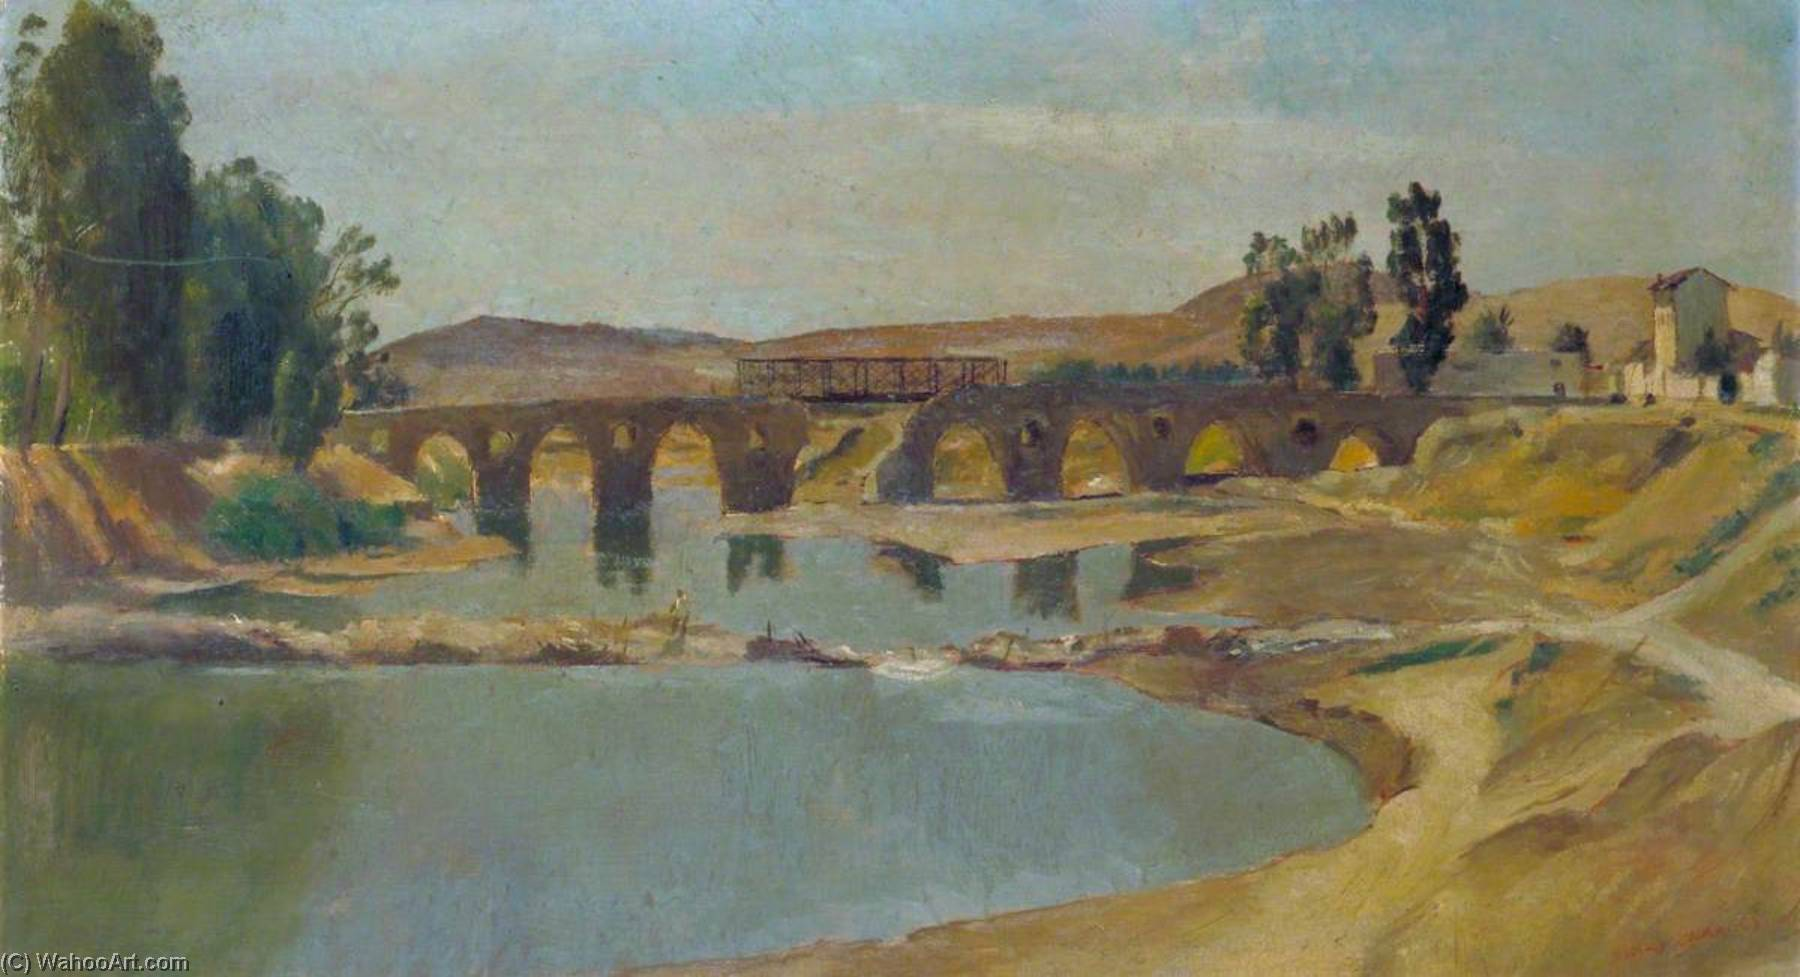 Order Oil Painting : The Bailey Bridge at Medjez el Bab, 1943 by Henry Marvell Carr | WahooArt.com